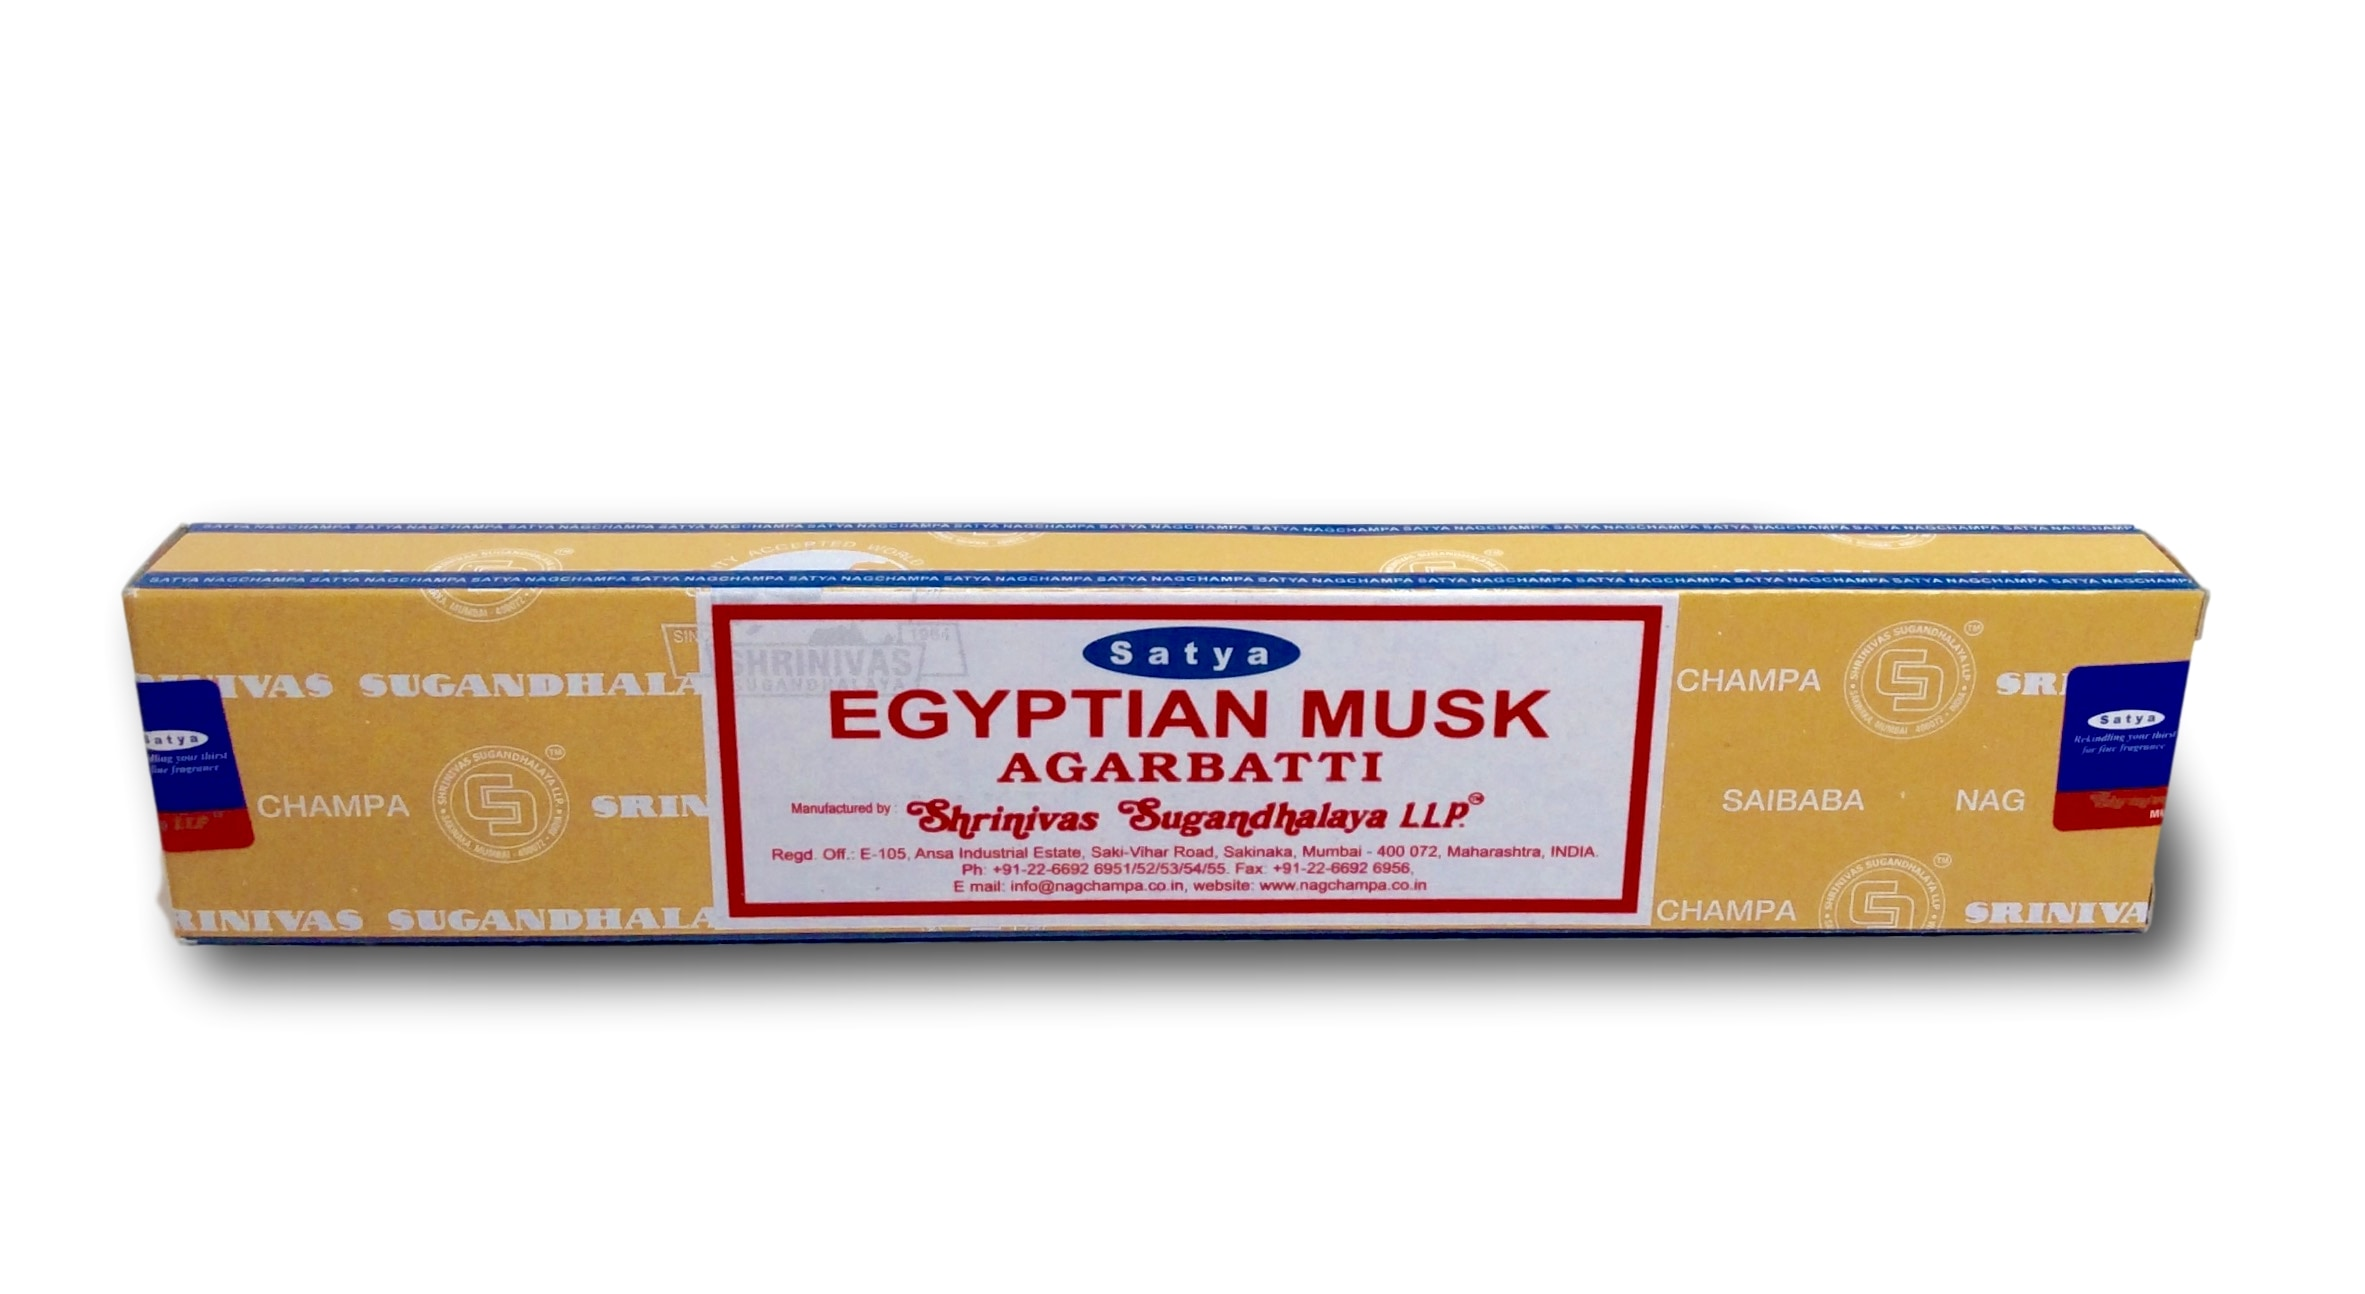 Satya Egyptian Musk